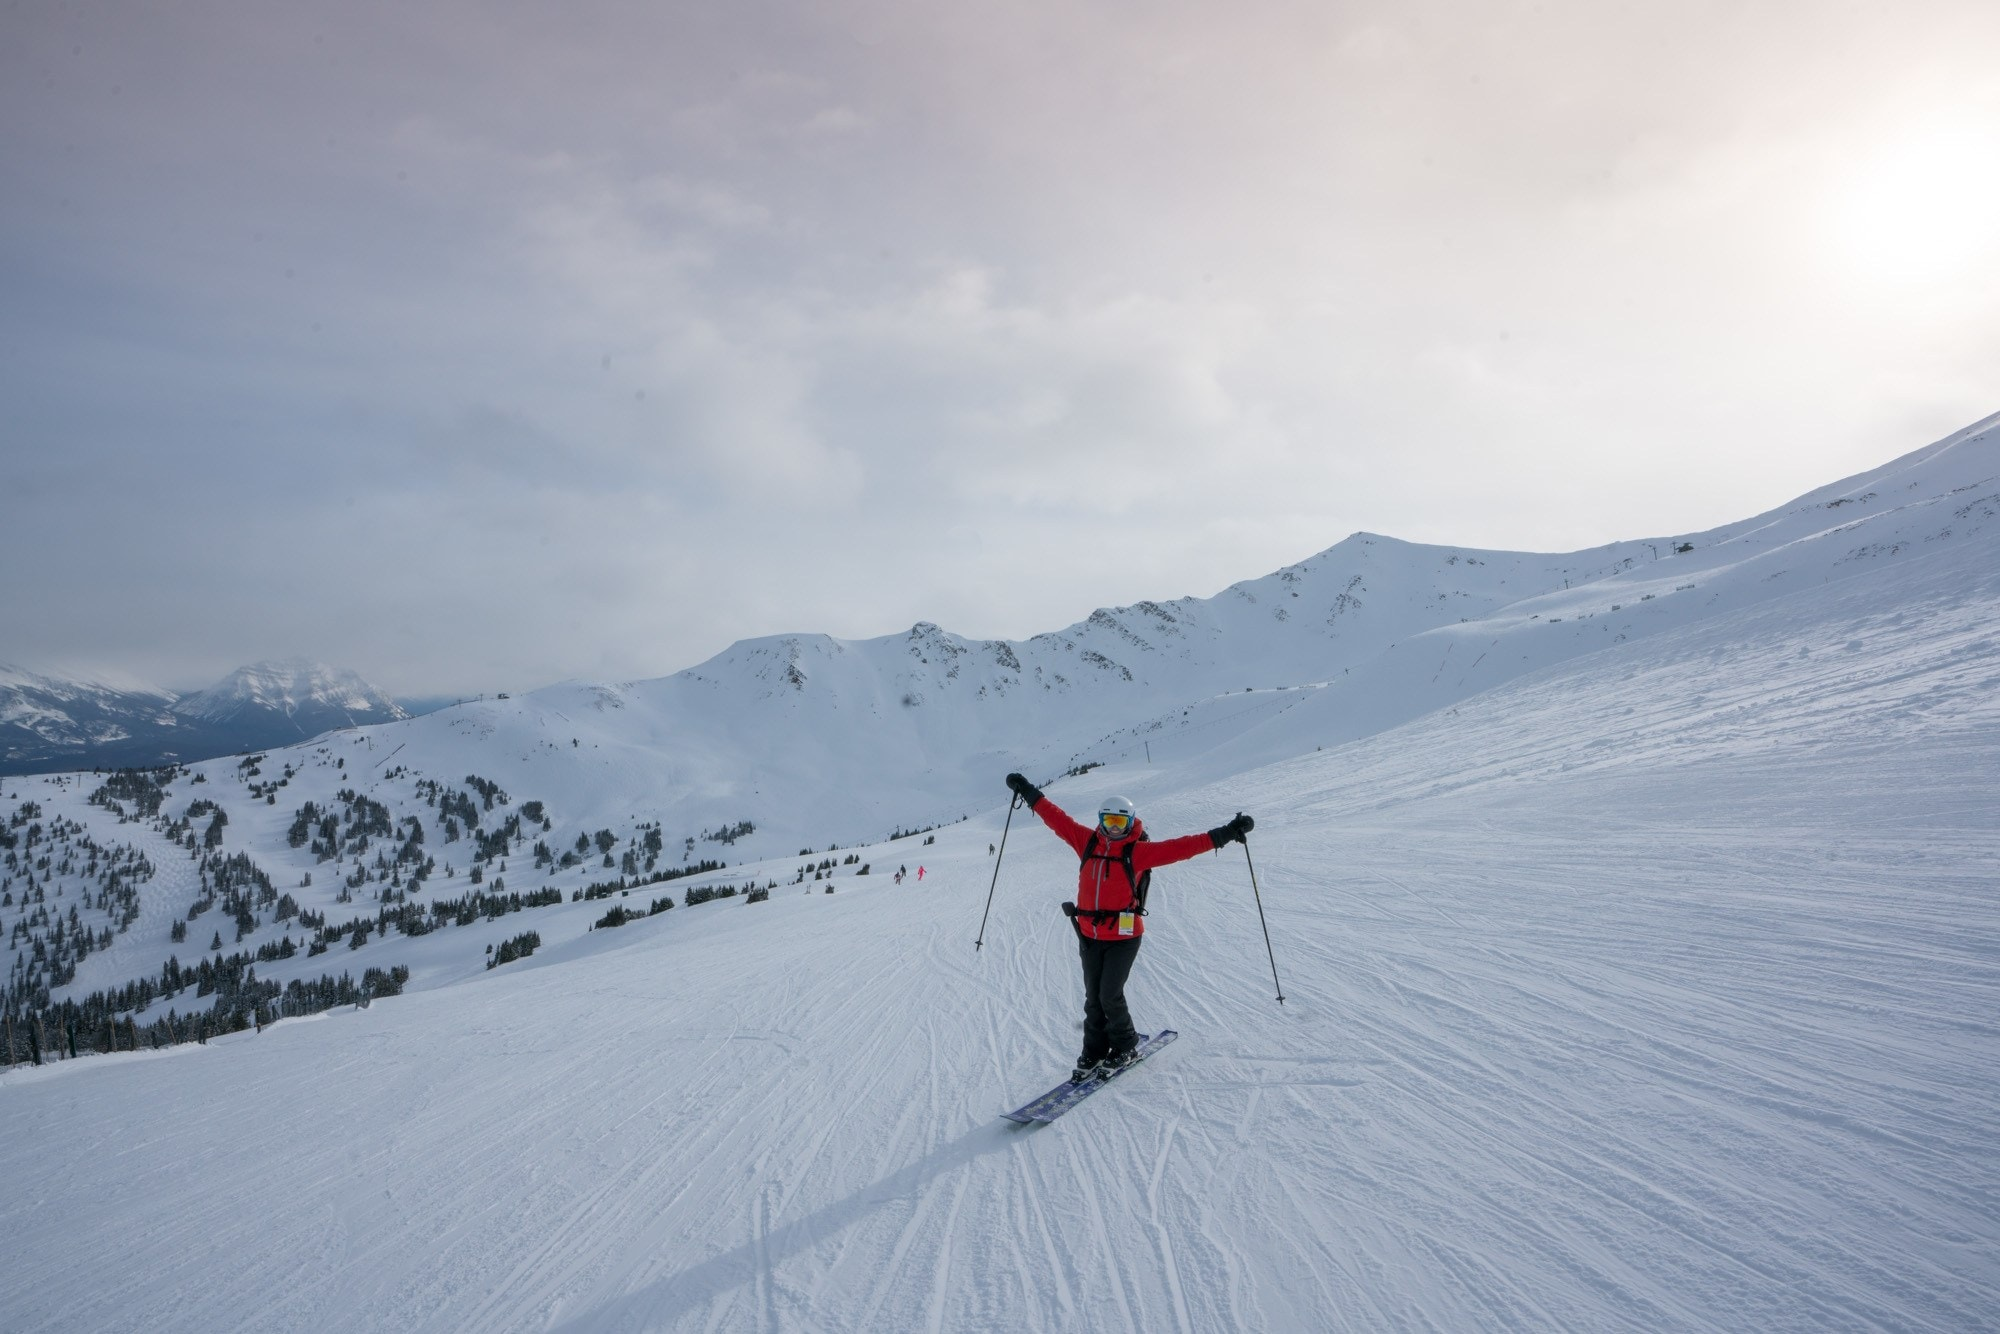 It's never too late to start! Learn how to ski this winter with these top 10 beginner ski tips for adults, with advice on gear, technique, lessons & more.